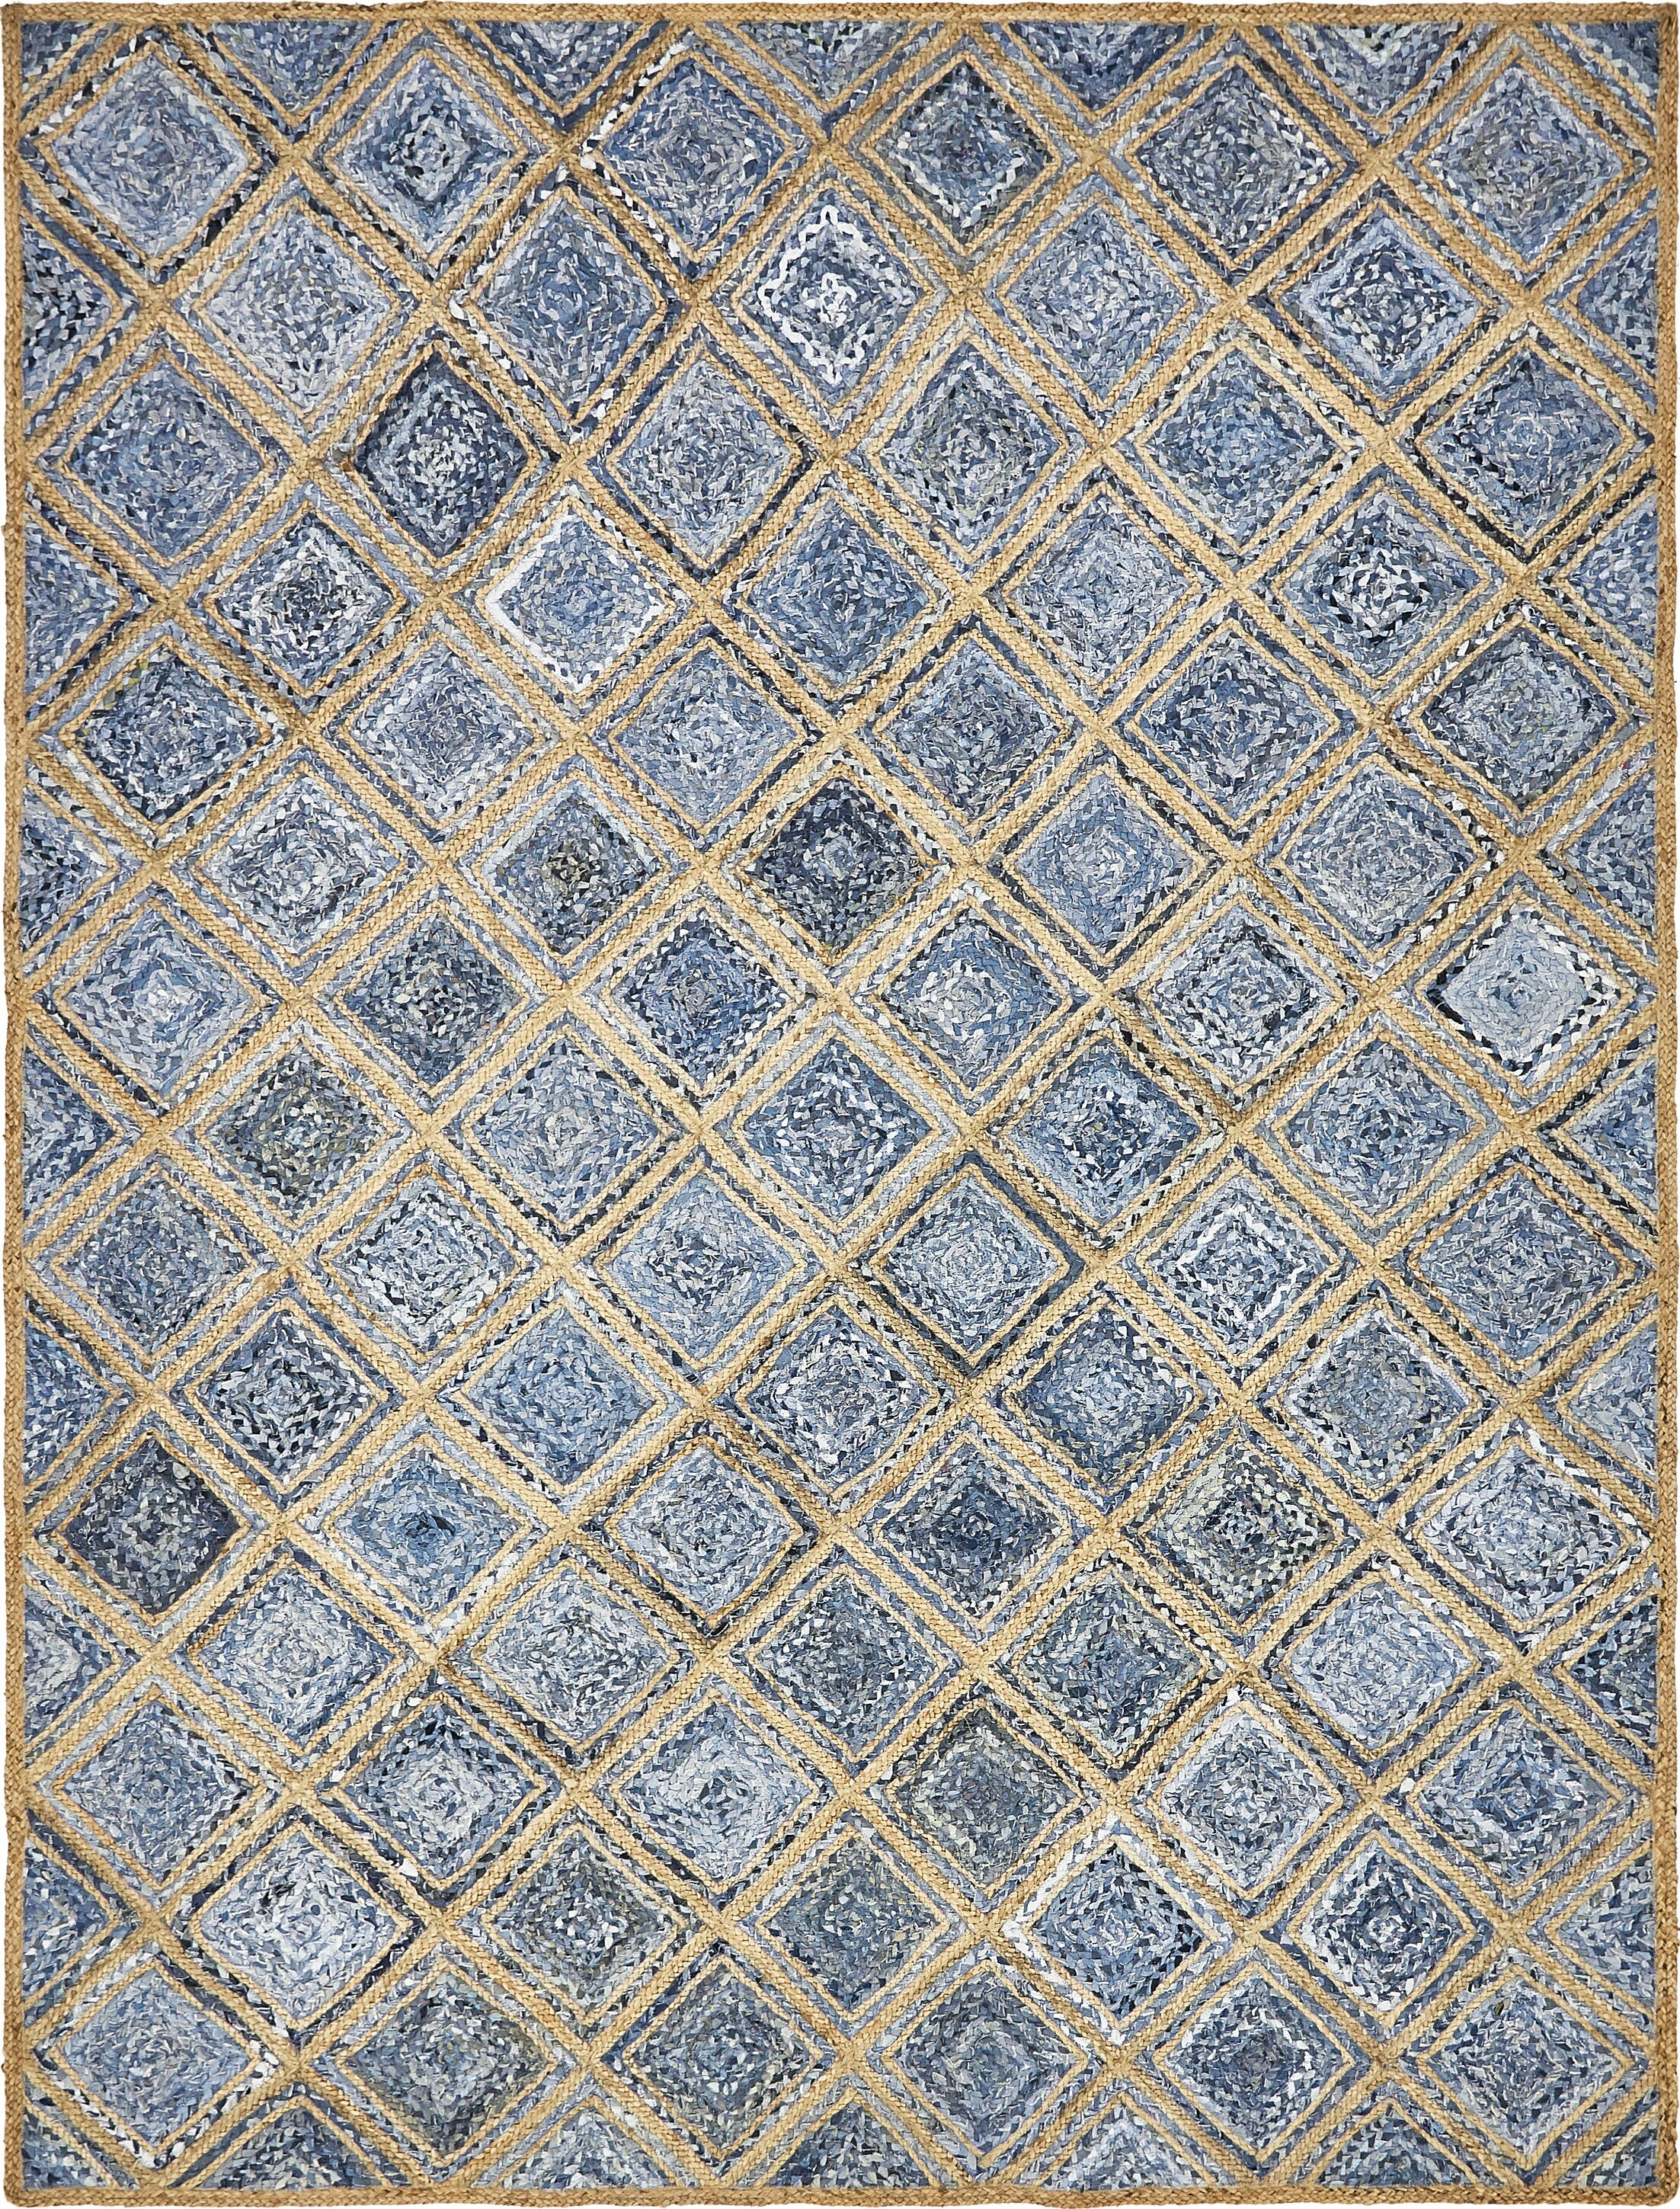 McRae Hand-Braided Blue Area Rug Rug Size: Rectangle 9' x 12'